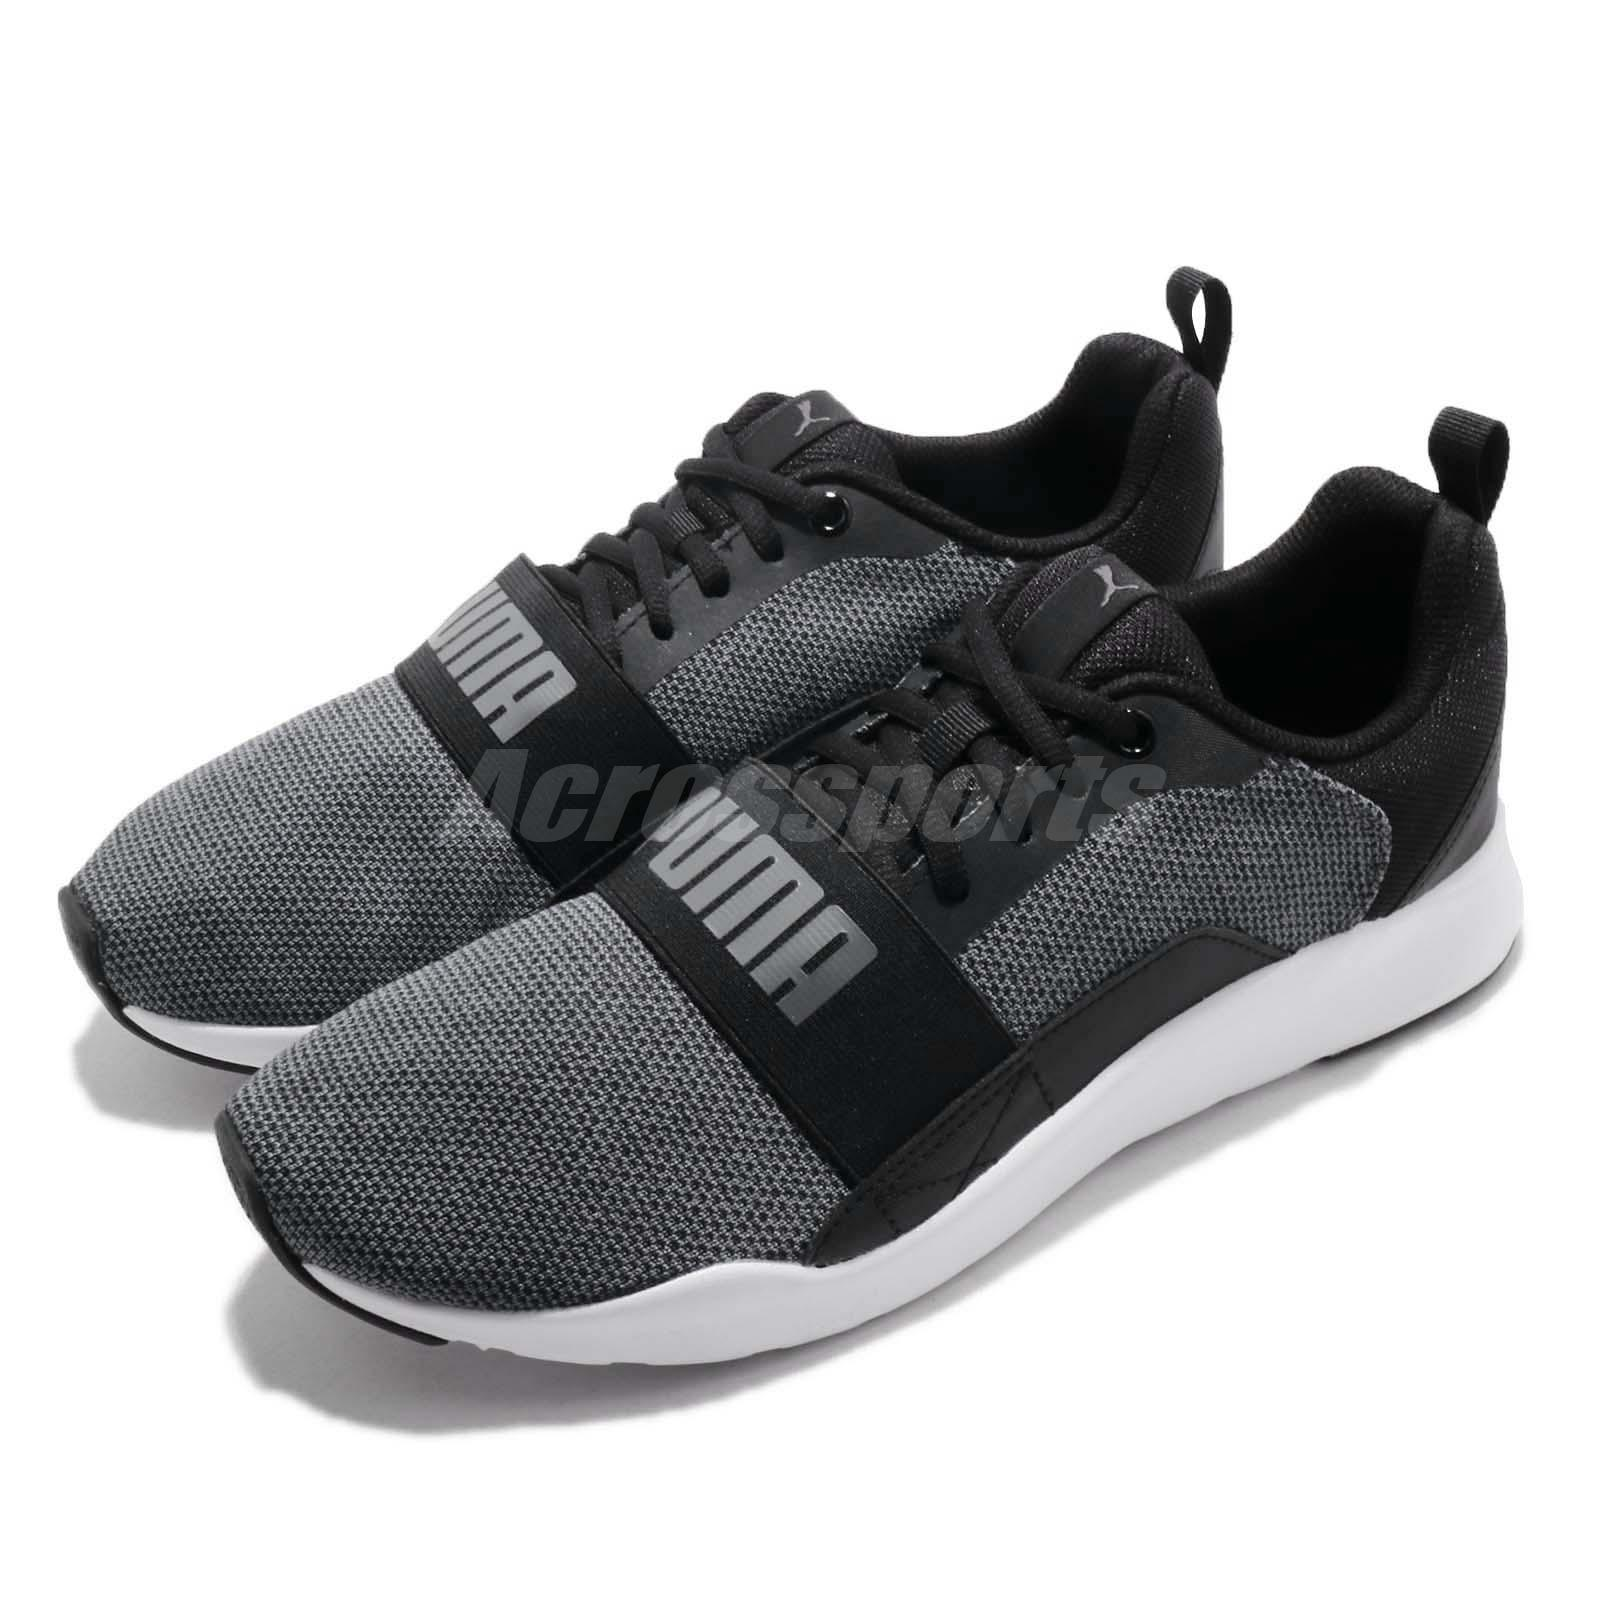 5e9cb54c66a Details about Puma Wired Knit Black Grey White Men Running Casual Shoes  Sneakers 366971-01